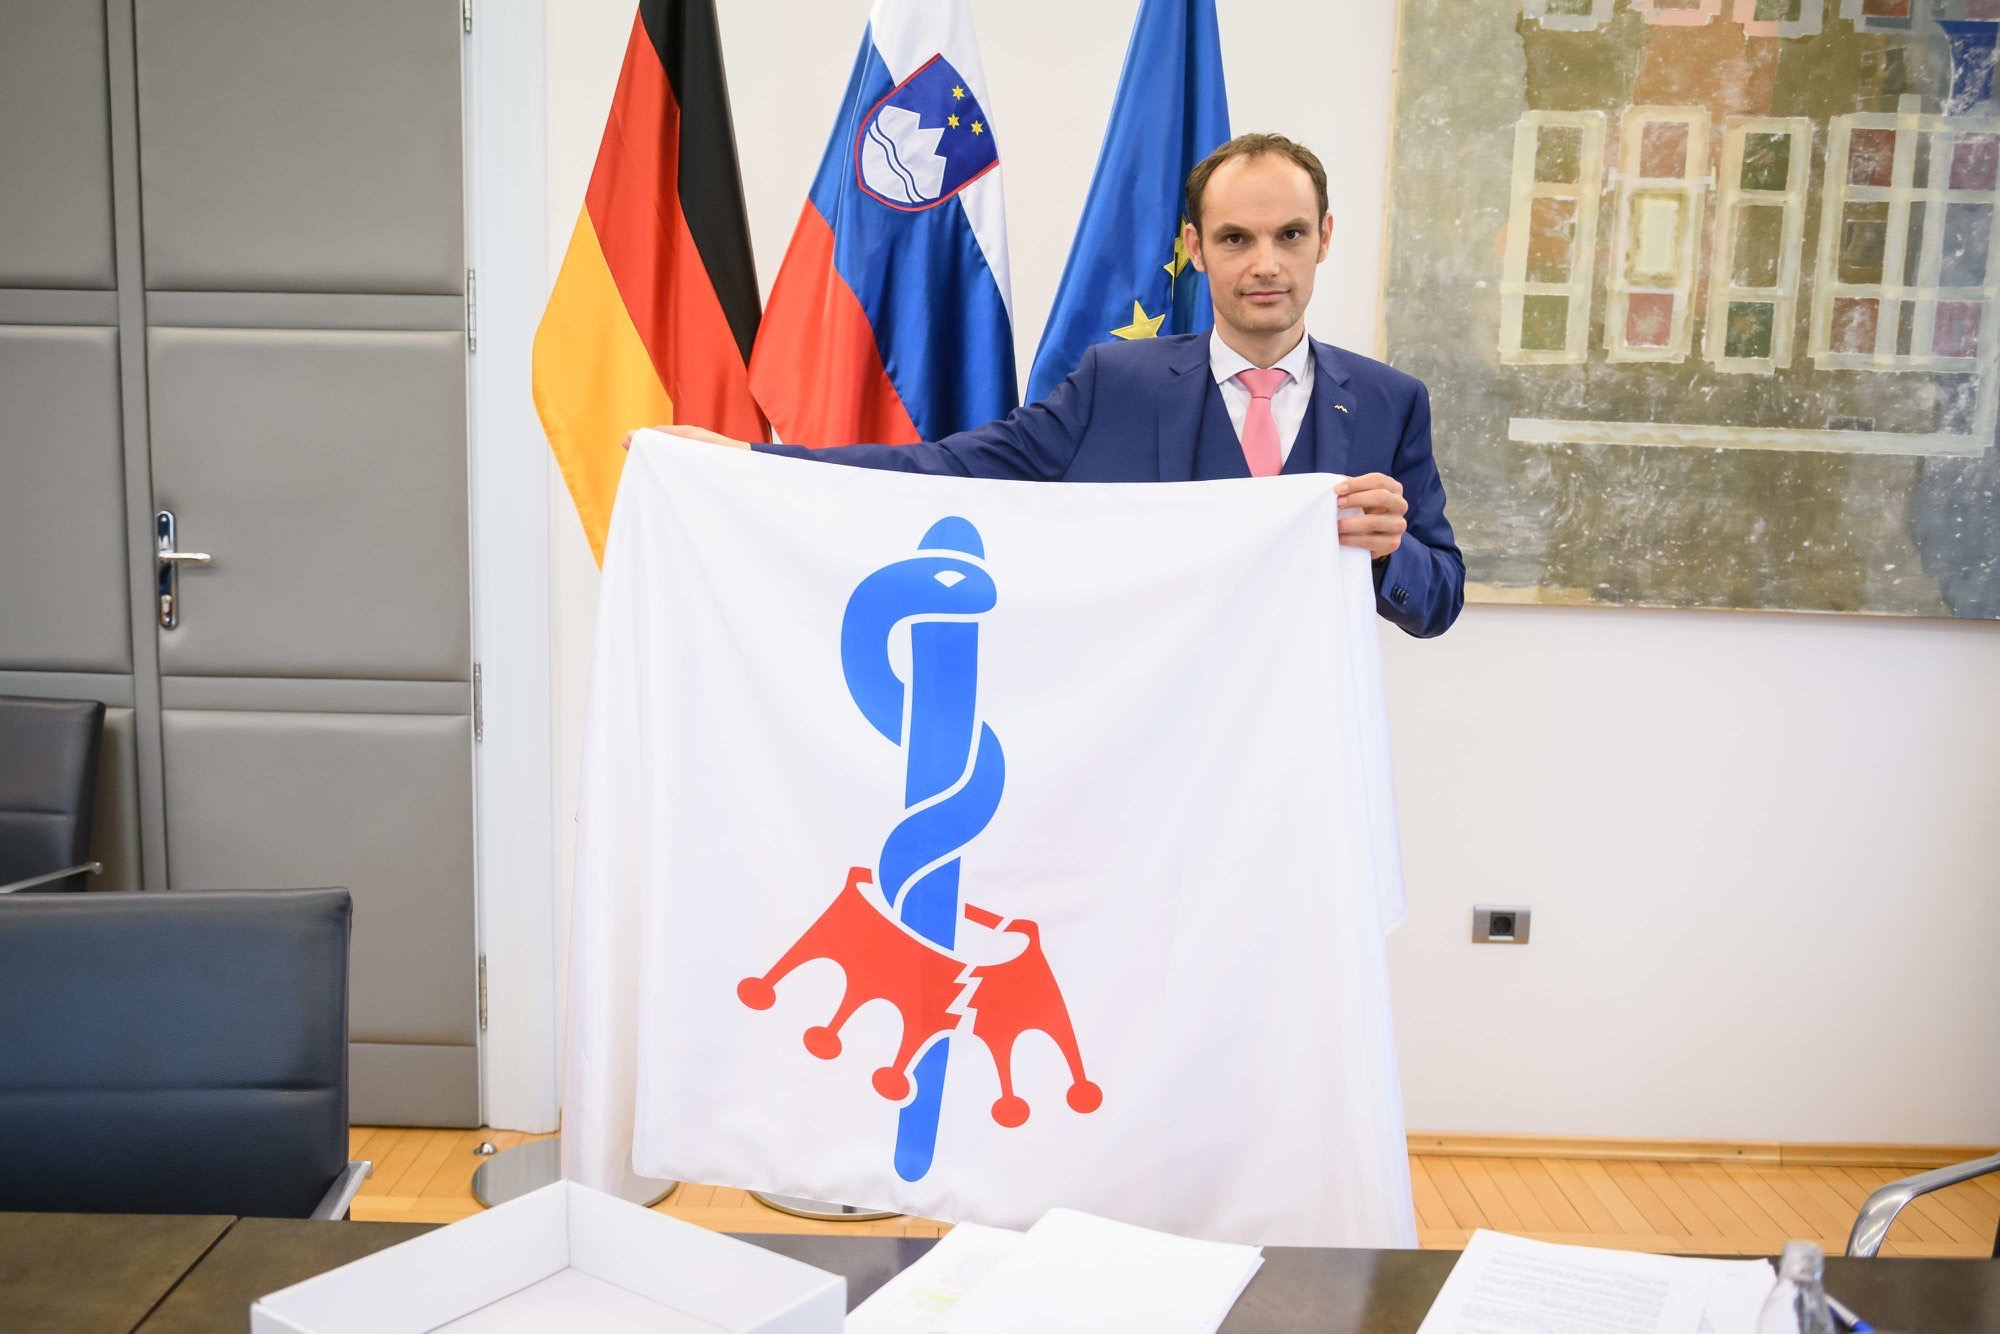 Foreign Minister Anže Logar during the handing over of the flag to German Foreign Minister Heiko Maas. Photo: Ministry of Foreign Affairs, 29 April 2020.